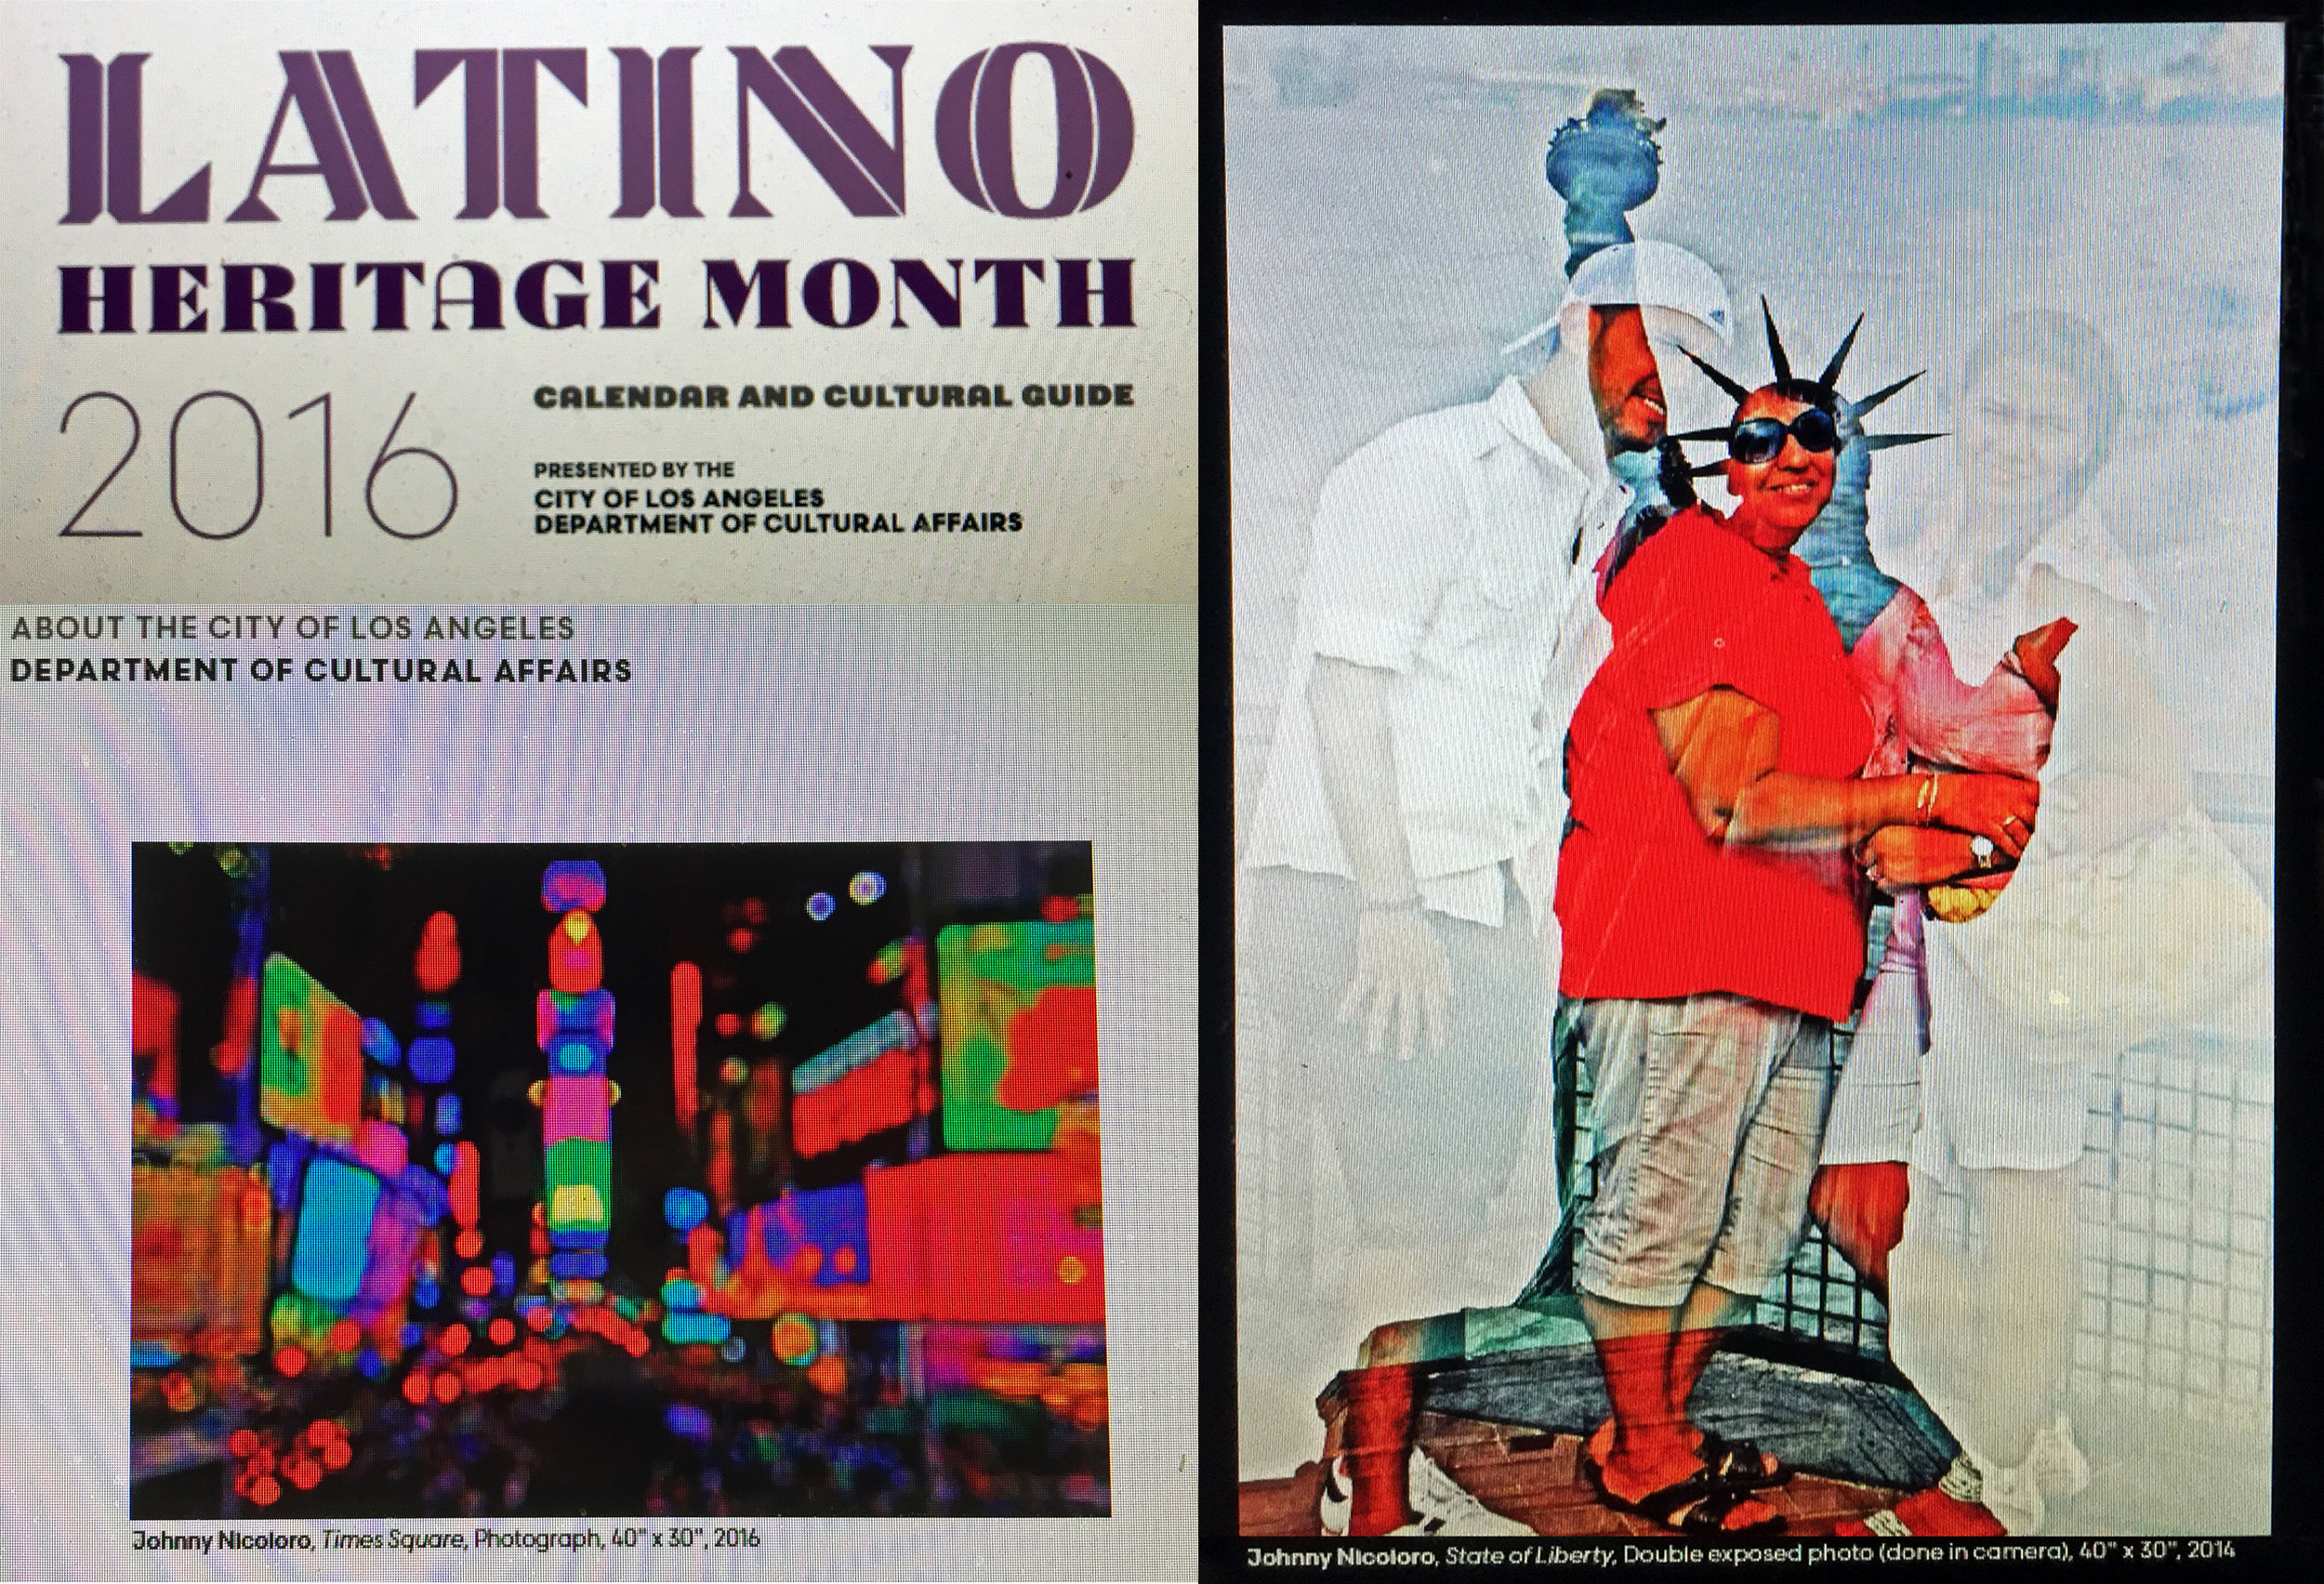 happy to be published 8th consecutive year  Times Square and State of Liberty